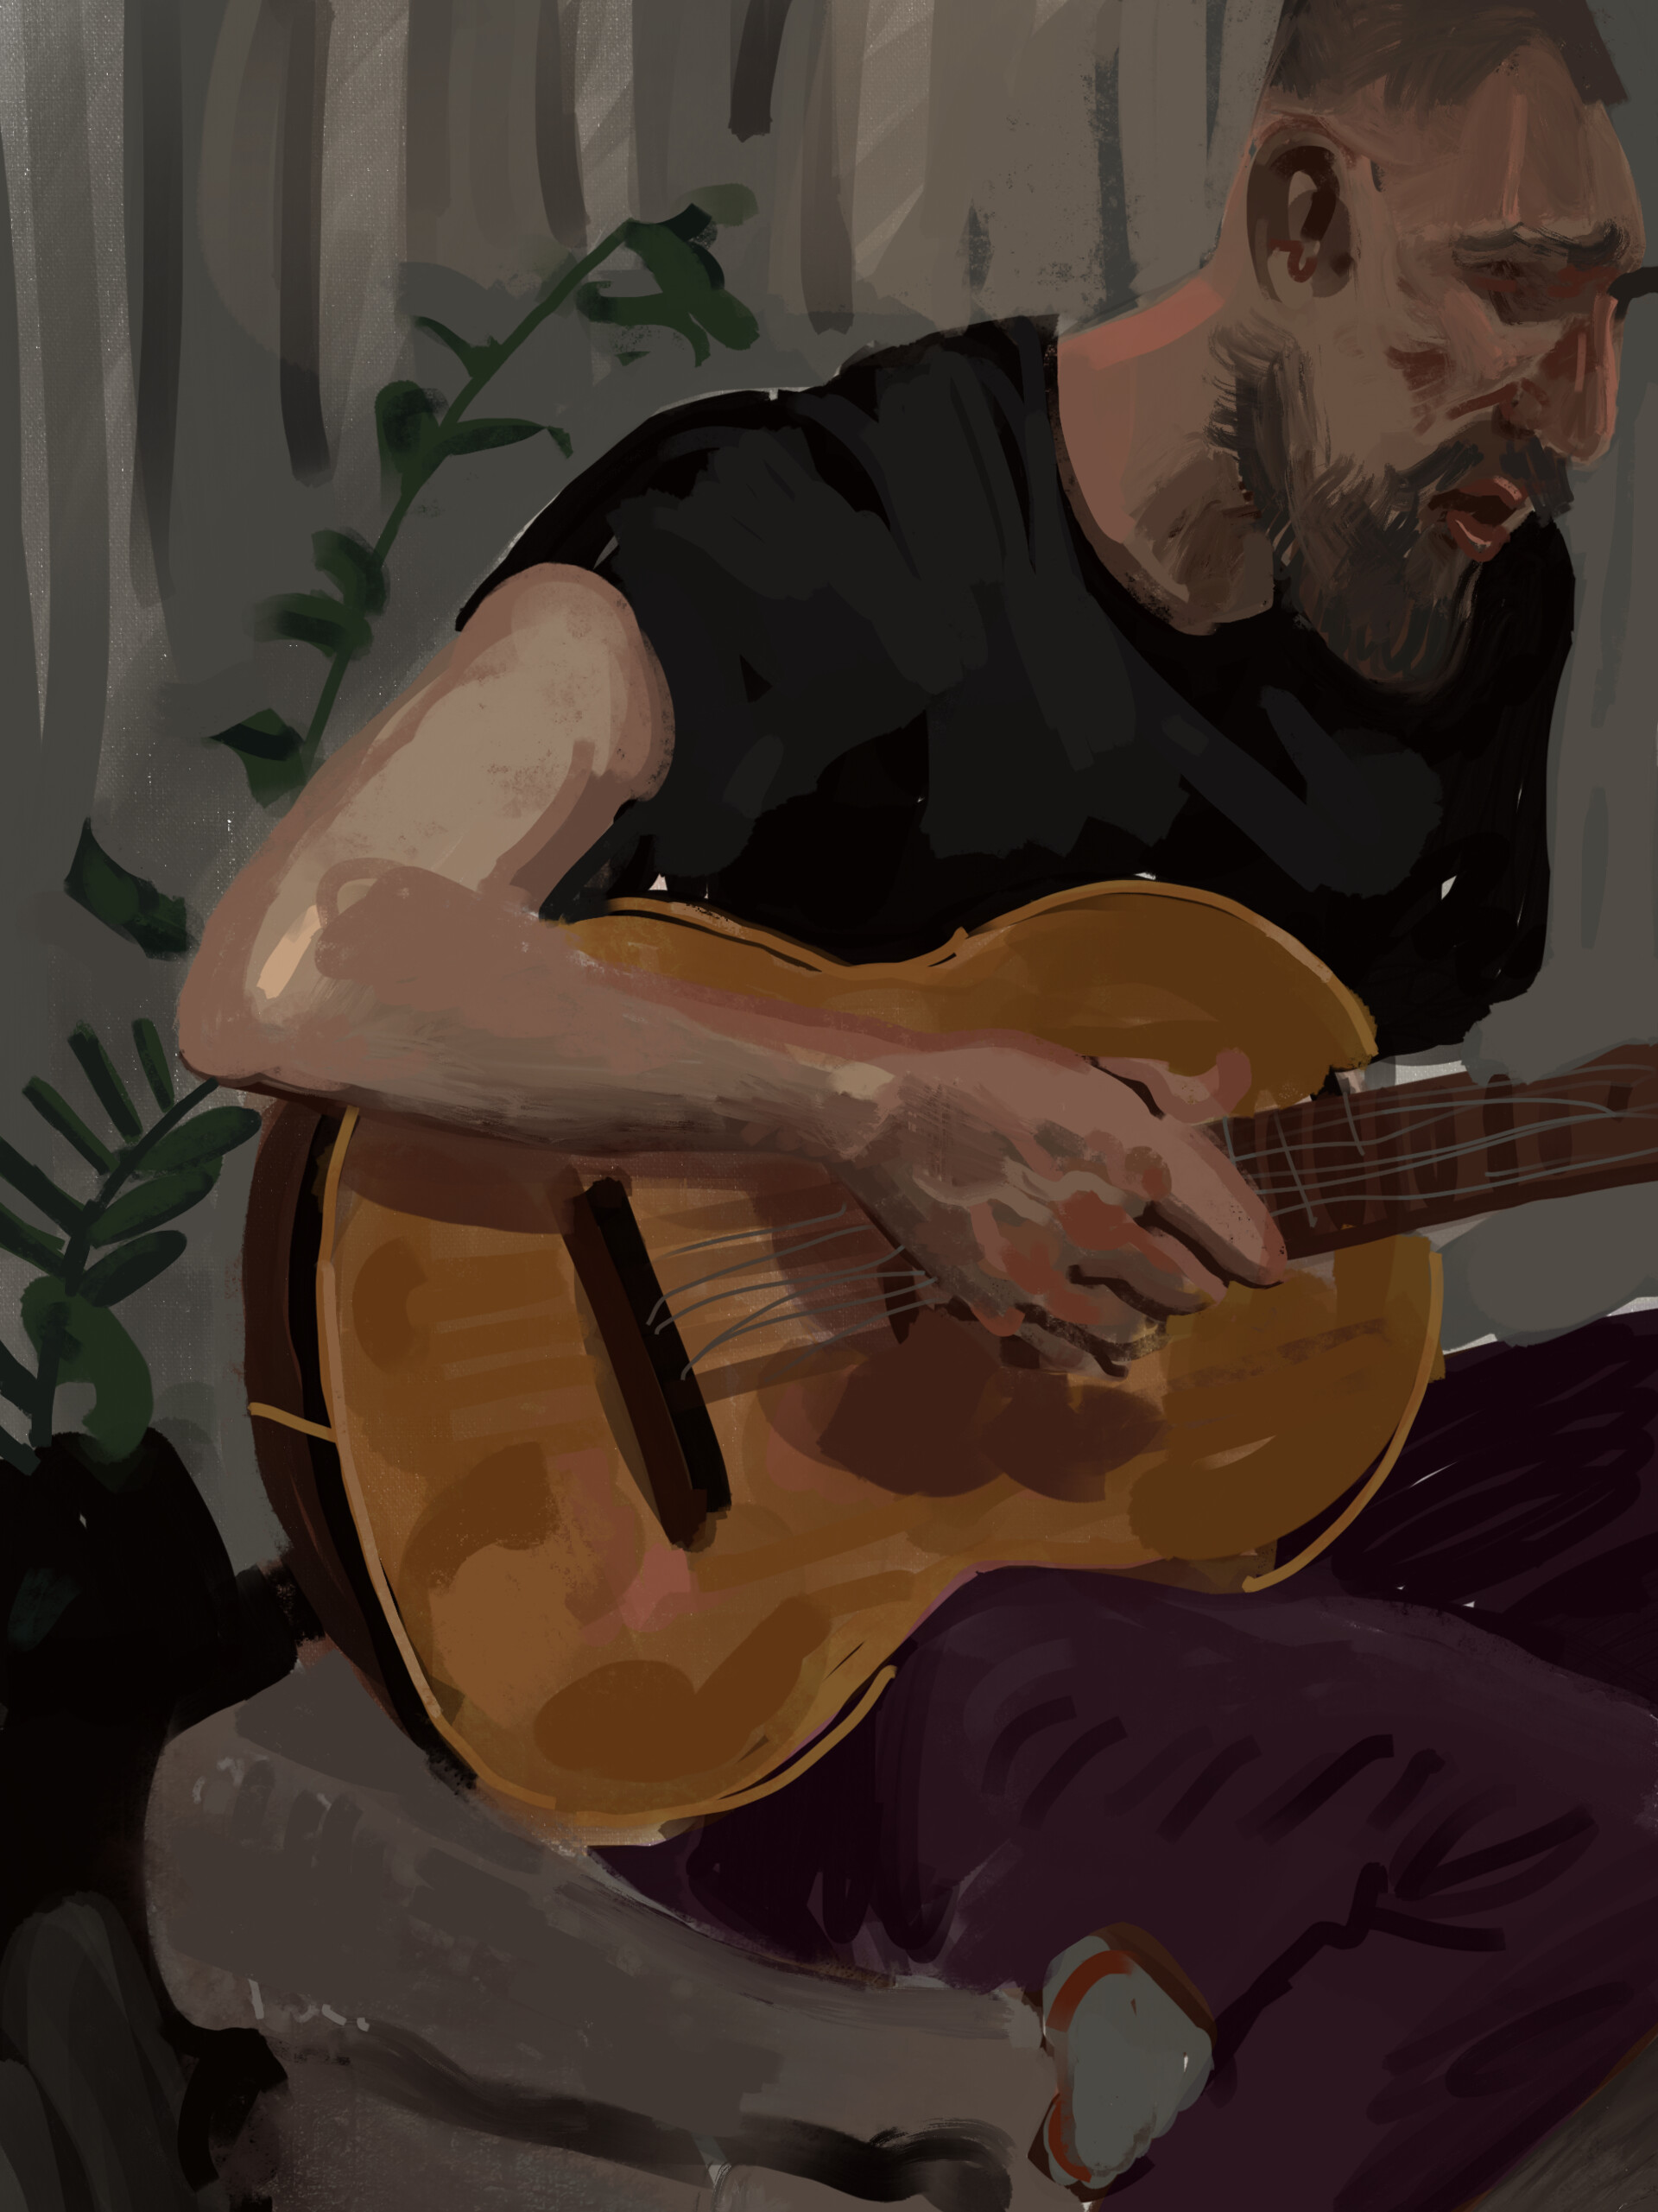 Holday sketching on the iPad